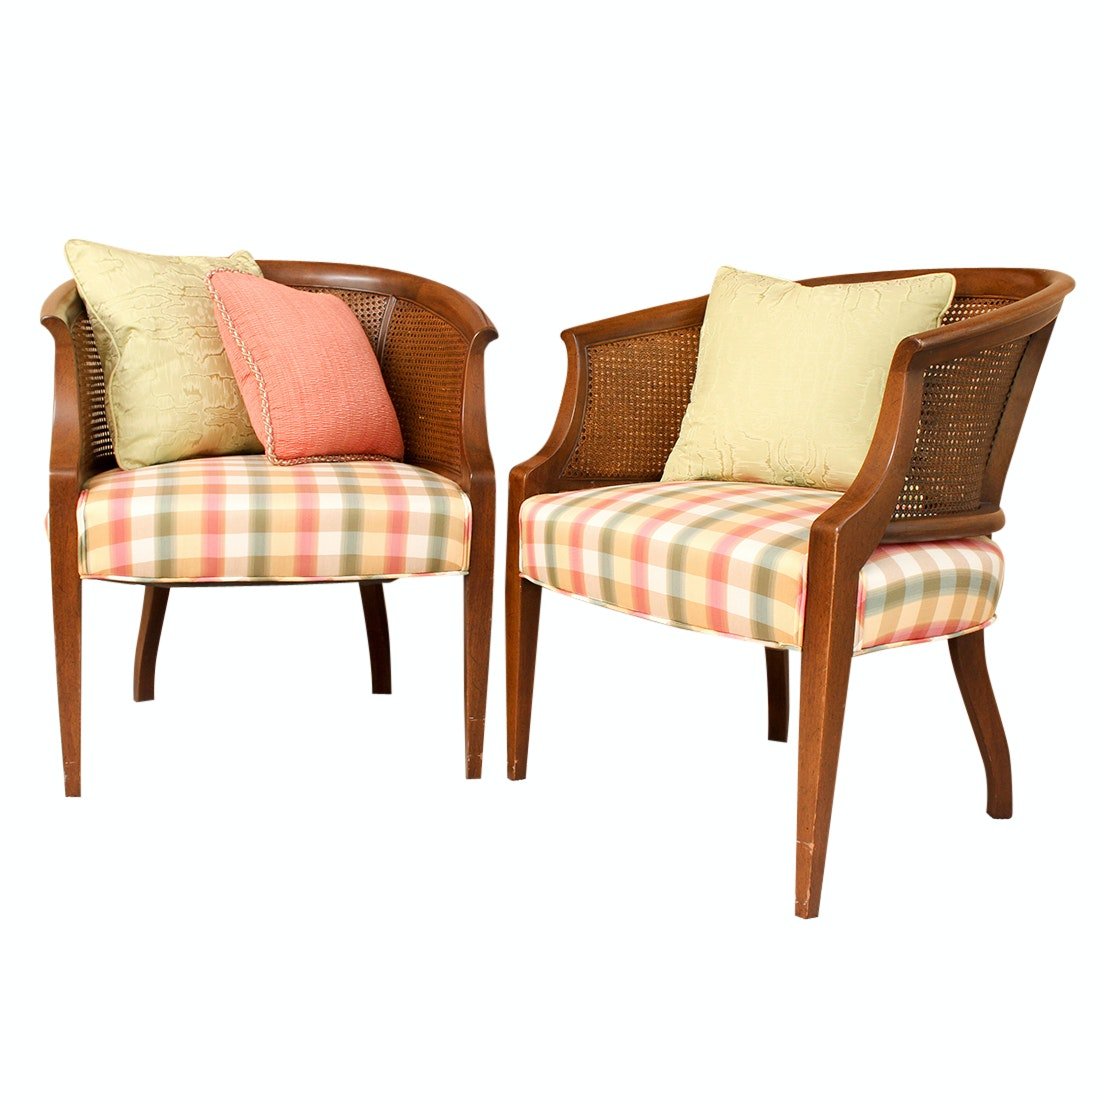 Upholstered Cane Side Chairs